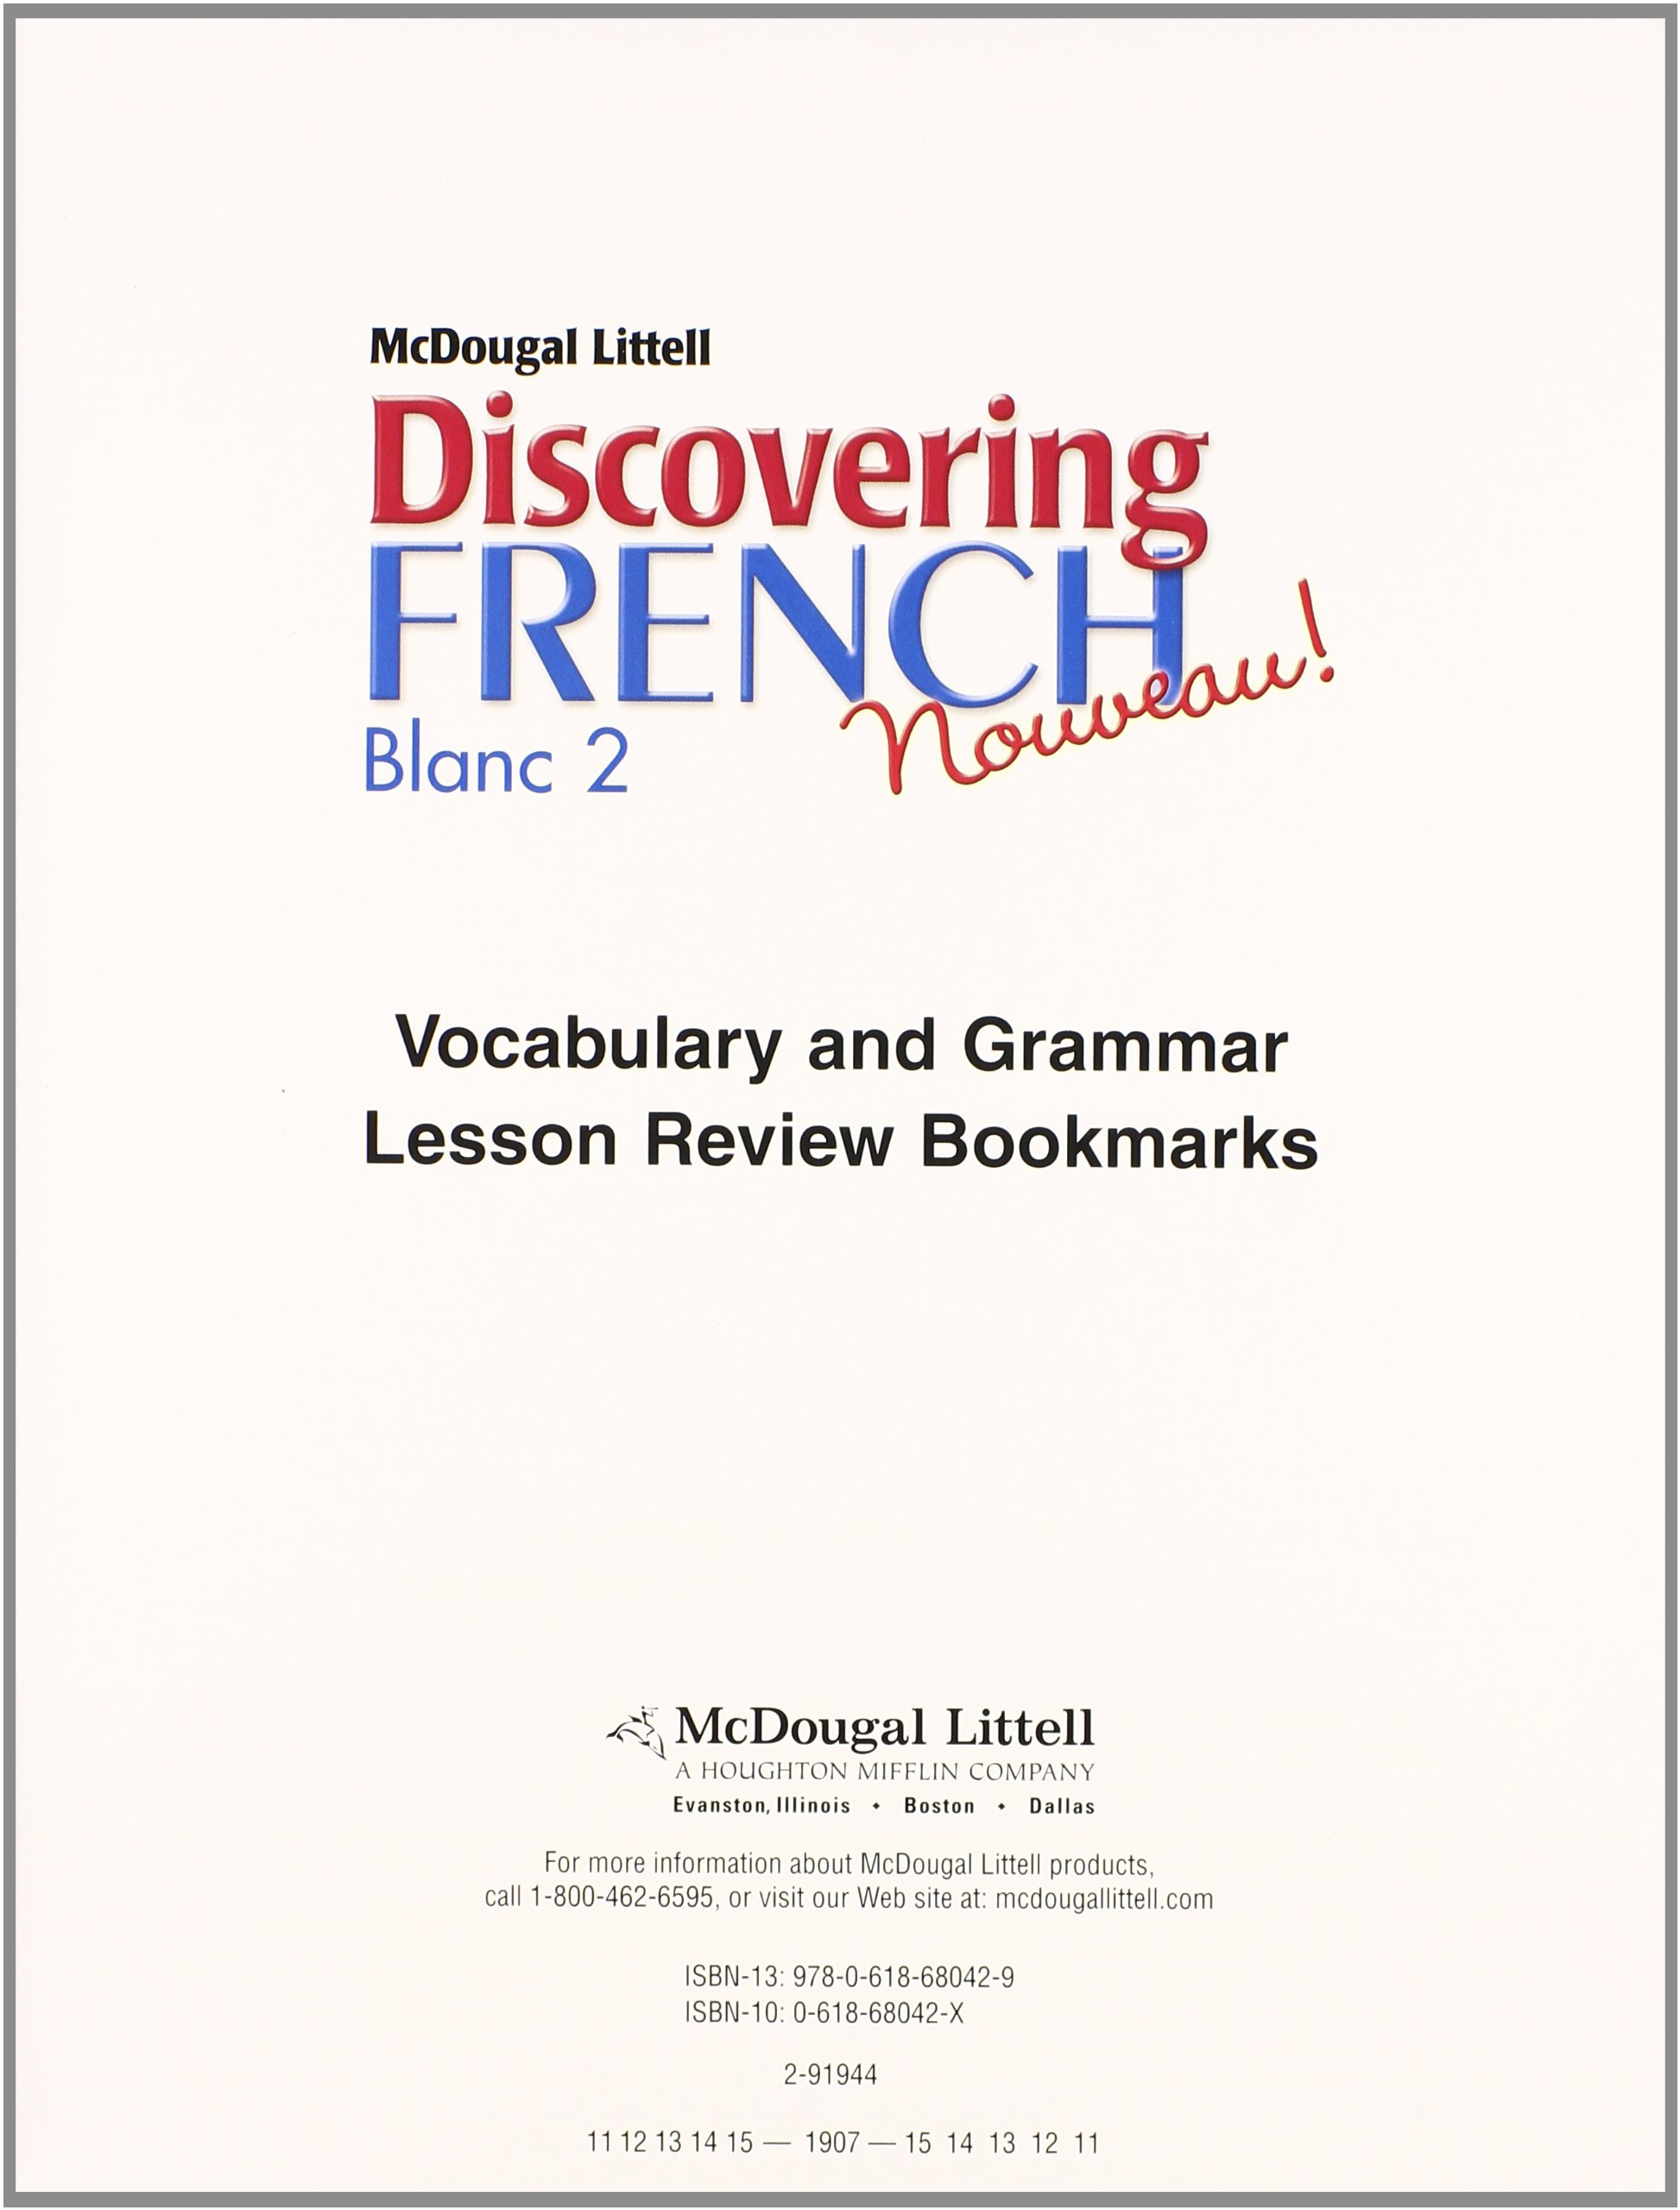 Discovering French Nouveau: Workbook Lesson Review Bookmarks Blanc Level 2 (French Edition)